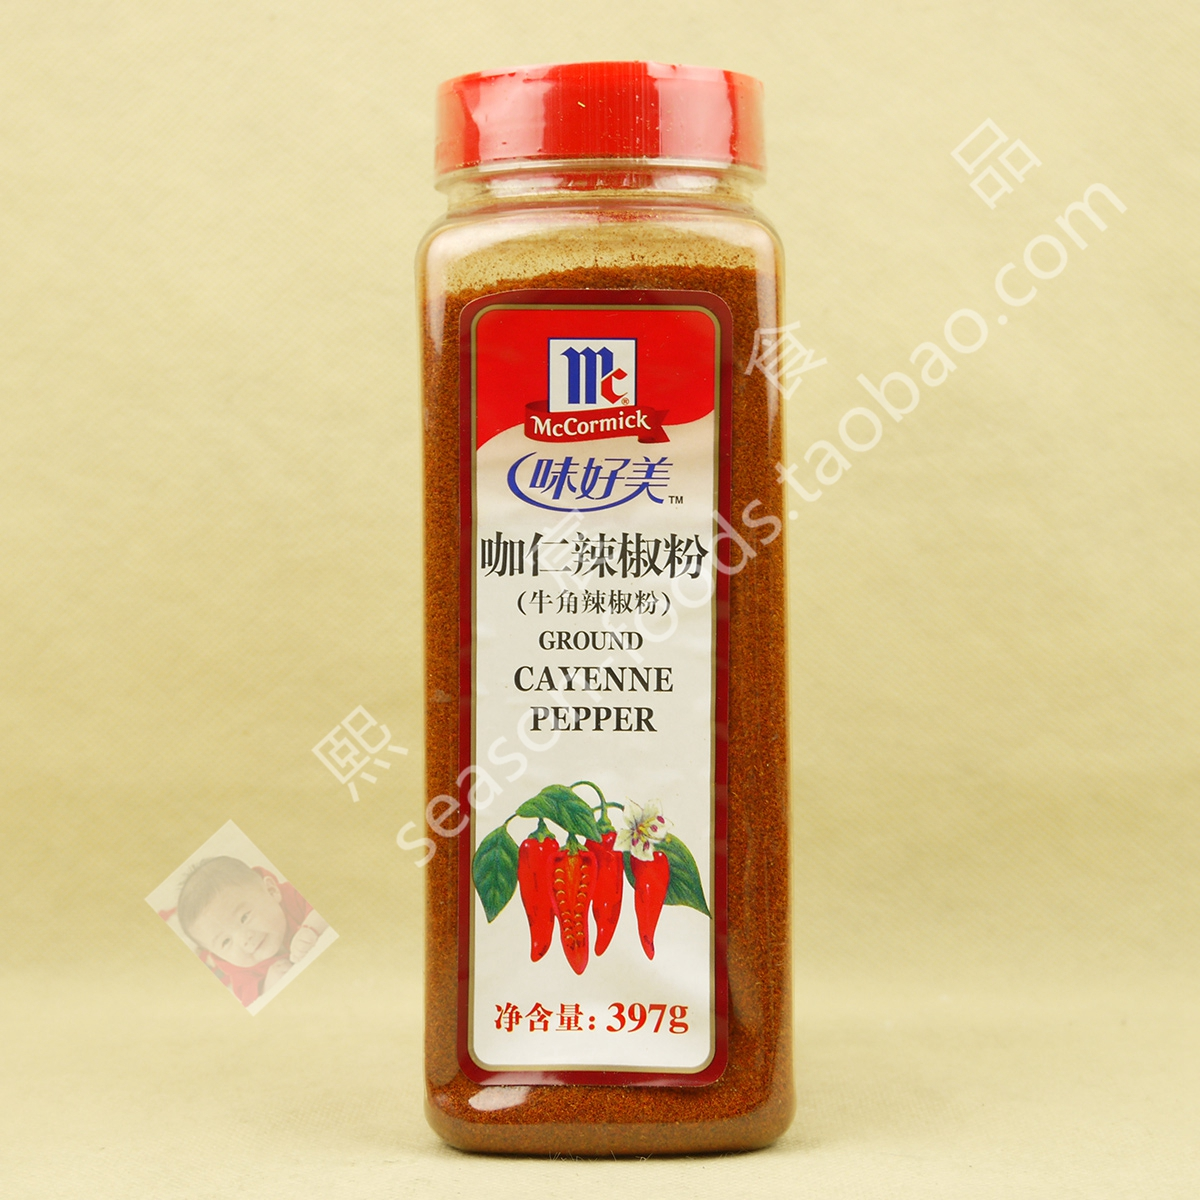 McCormick Ground Cayenne Pepper 味好美 咖仁/牛角辣椒粉 397g